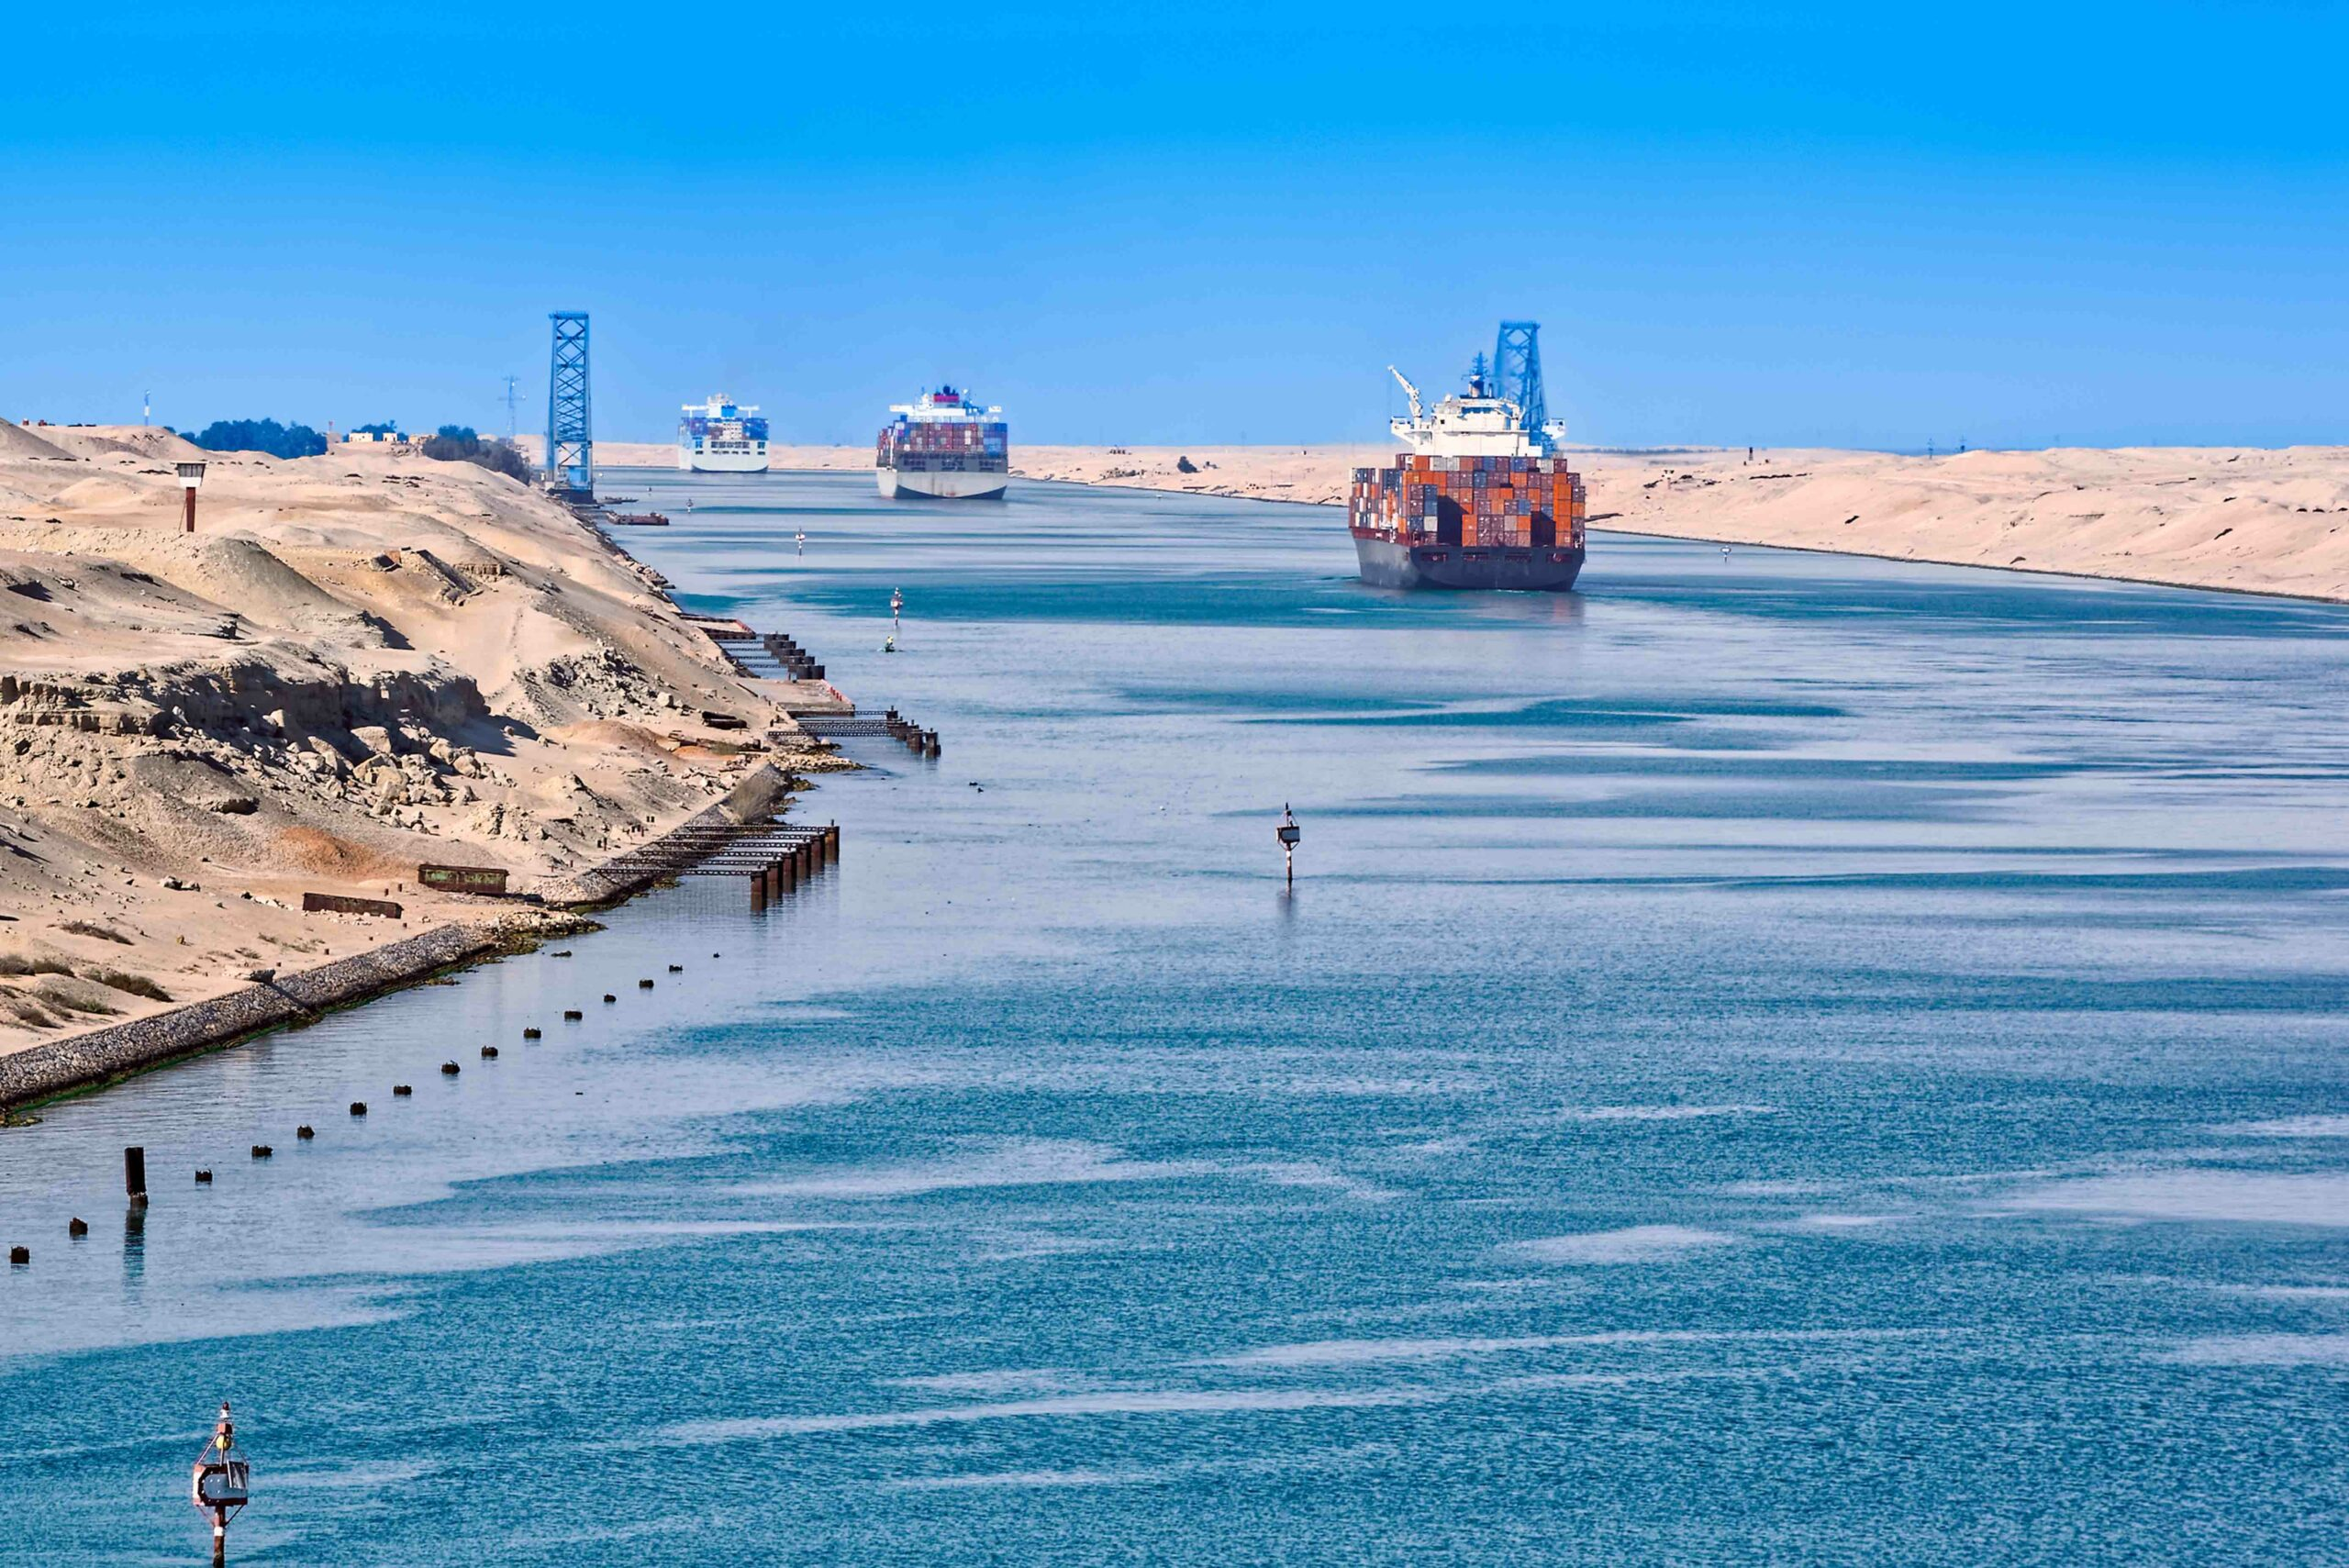 Suez expansion planning gearing up after Ever Given blockage Alfa logistic Family